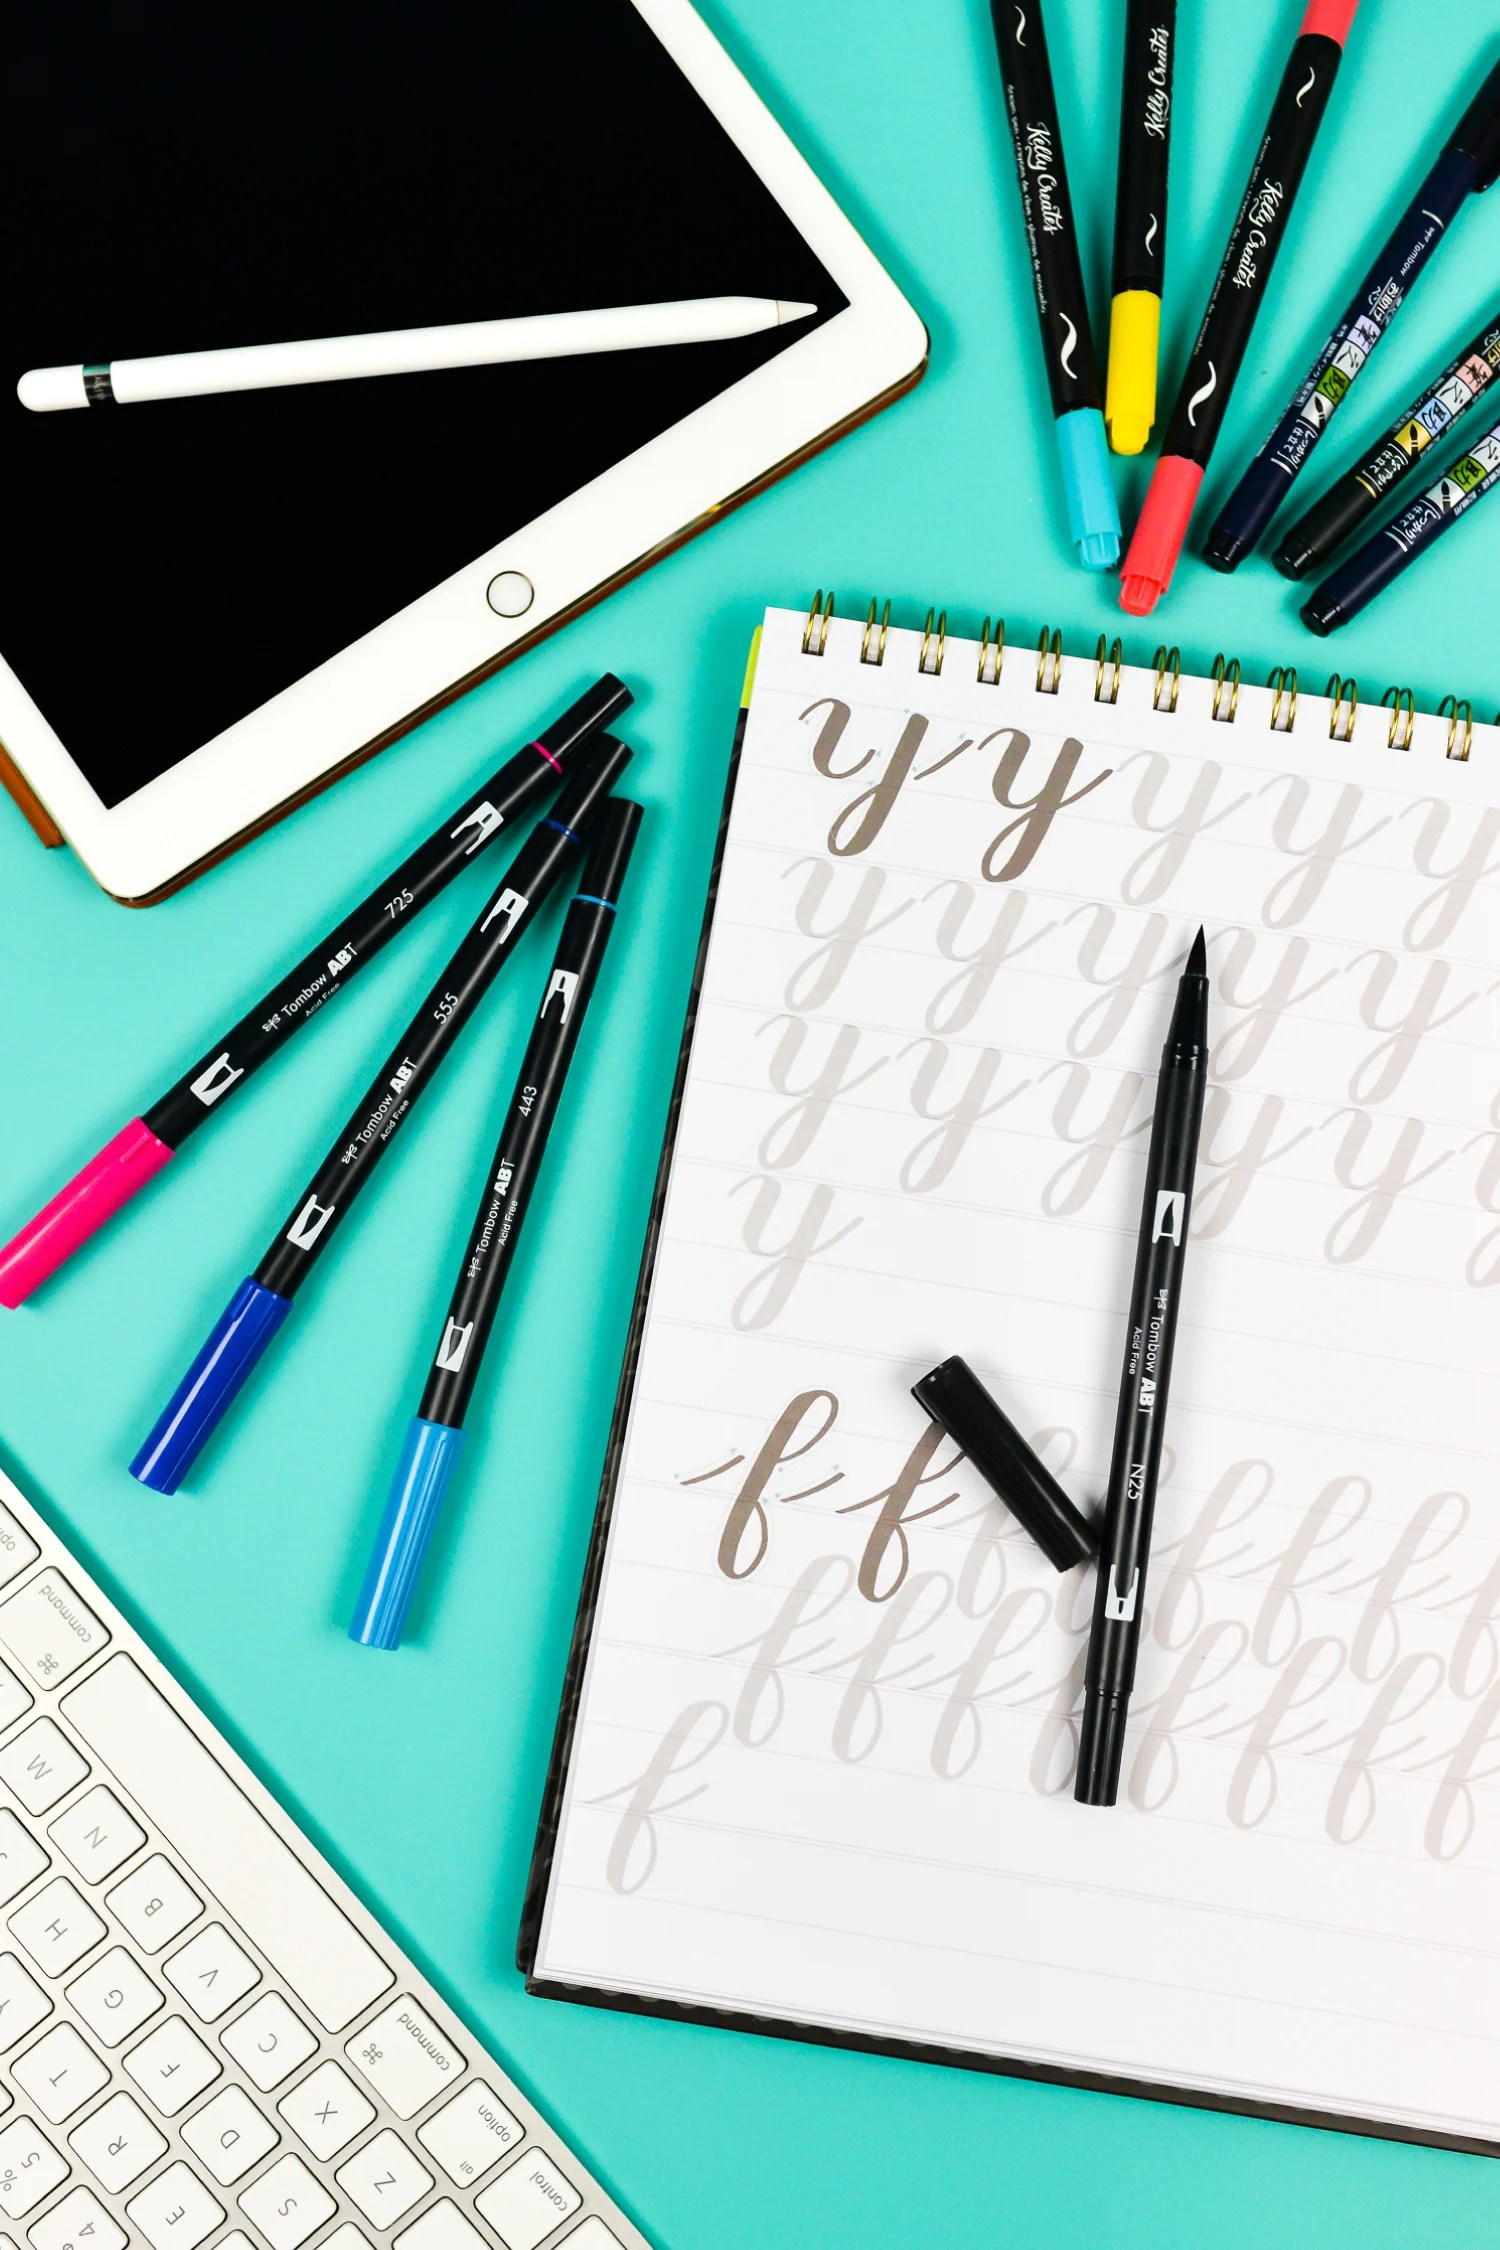 Want to learn how to hand letter? Skillshare has a huge array of online calligraphy and hand lettering courses! I've taken a bunch of them—here are six classes for learning hand lettering I found particularly helpful.